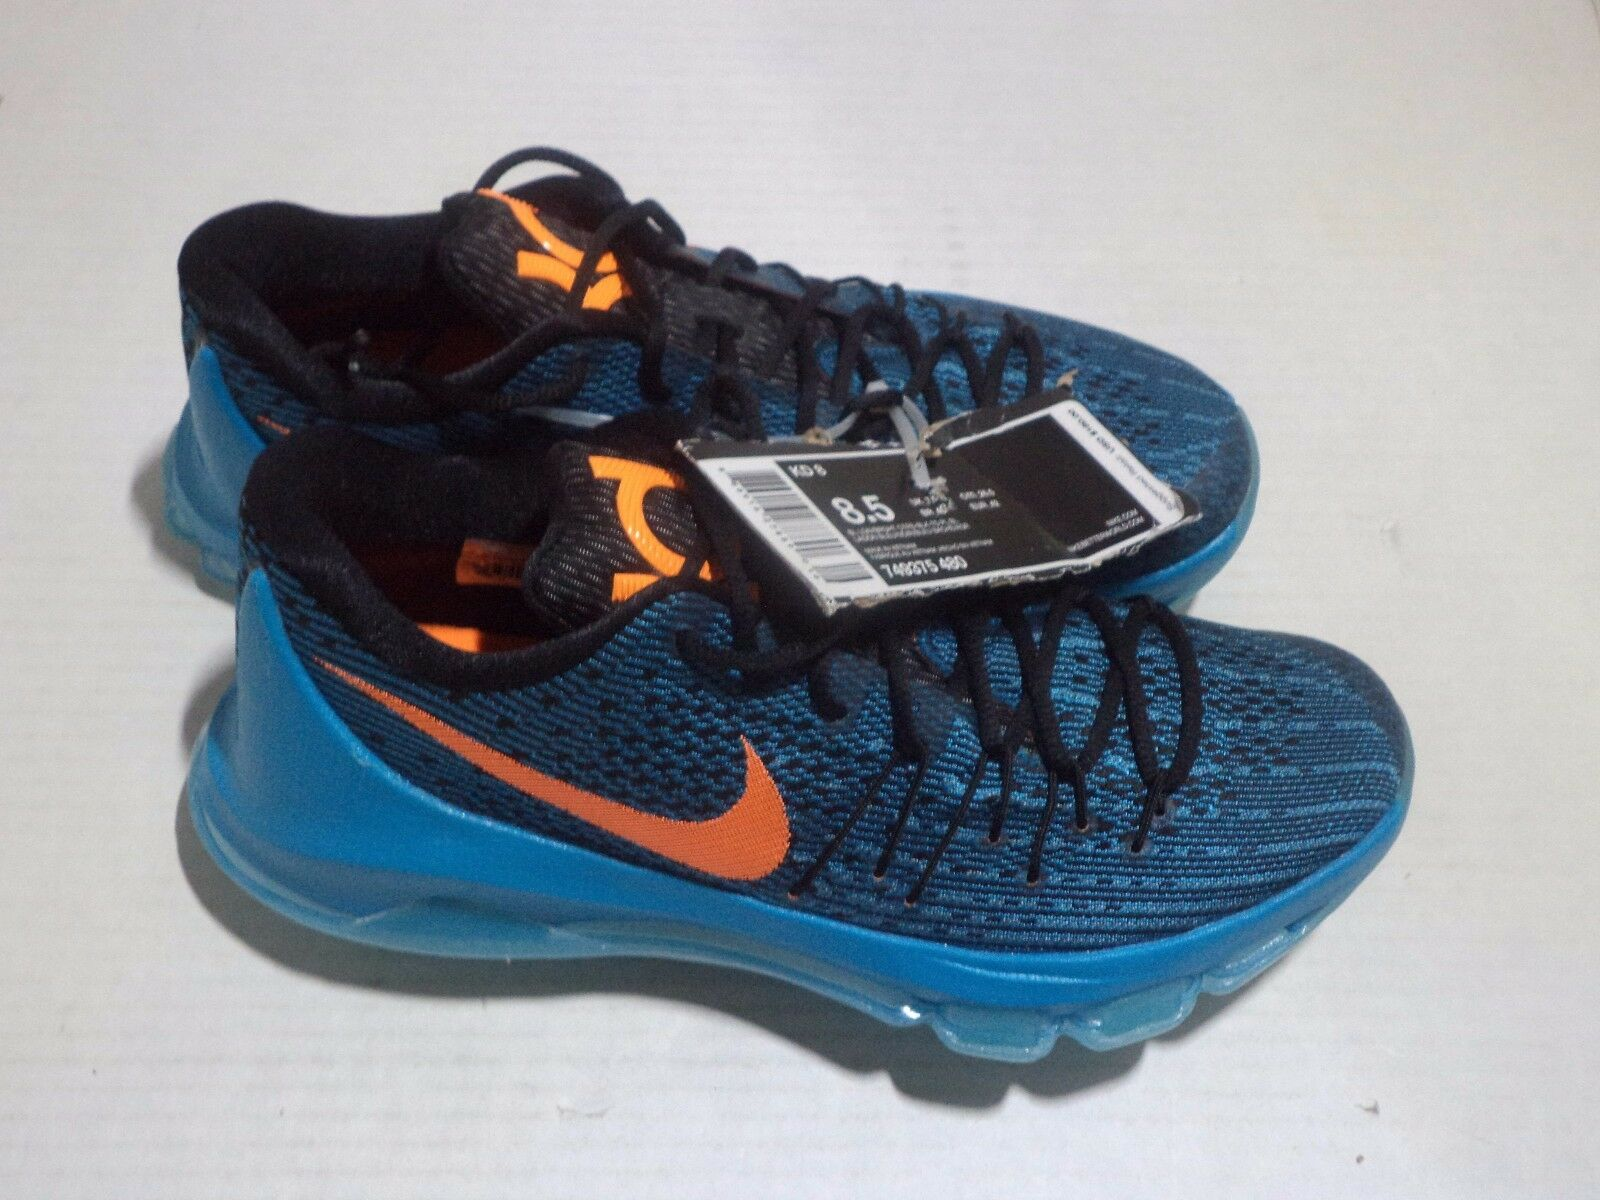 KD 8 Lightweight Flexible Support Color Size 8.5 Color BLUE LAGOON & BLACK/TIDE